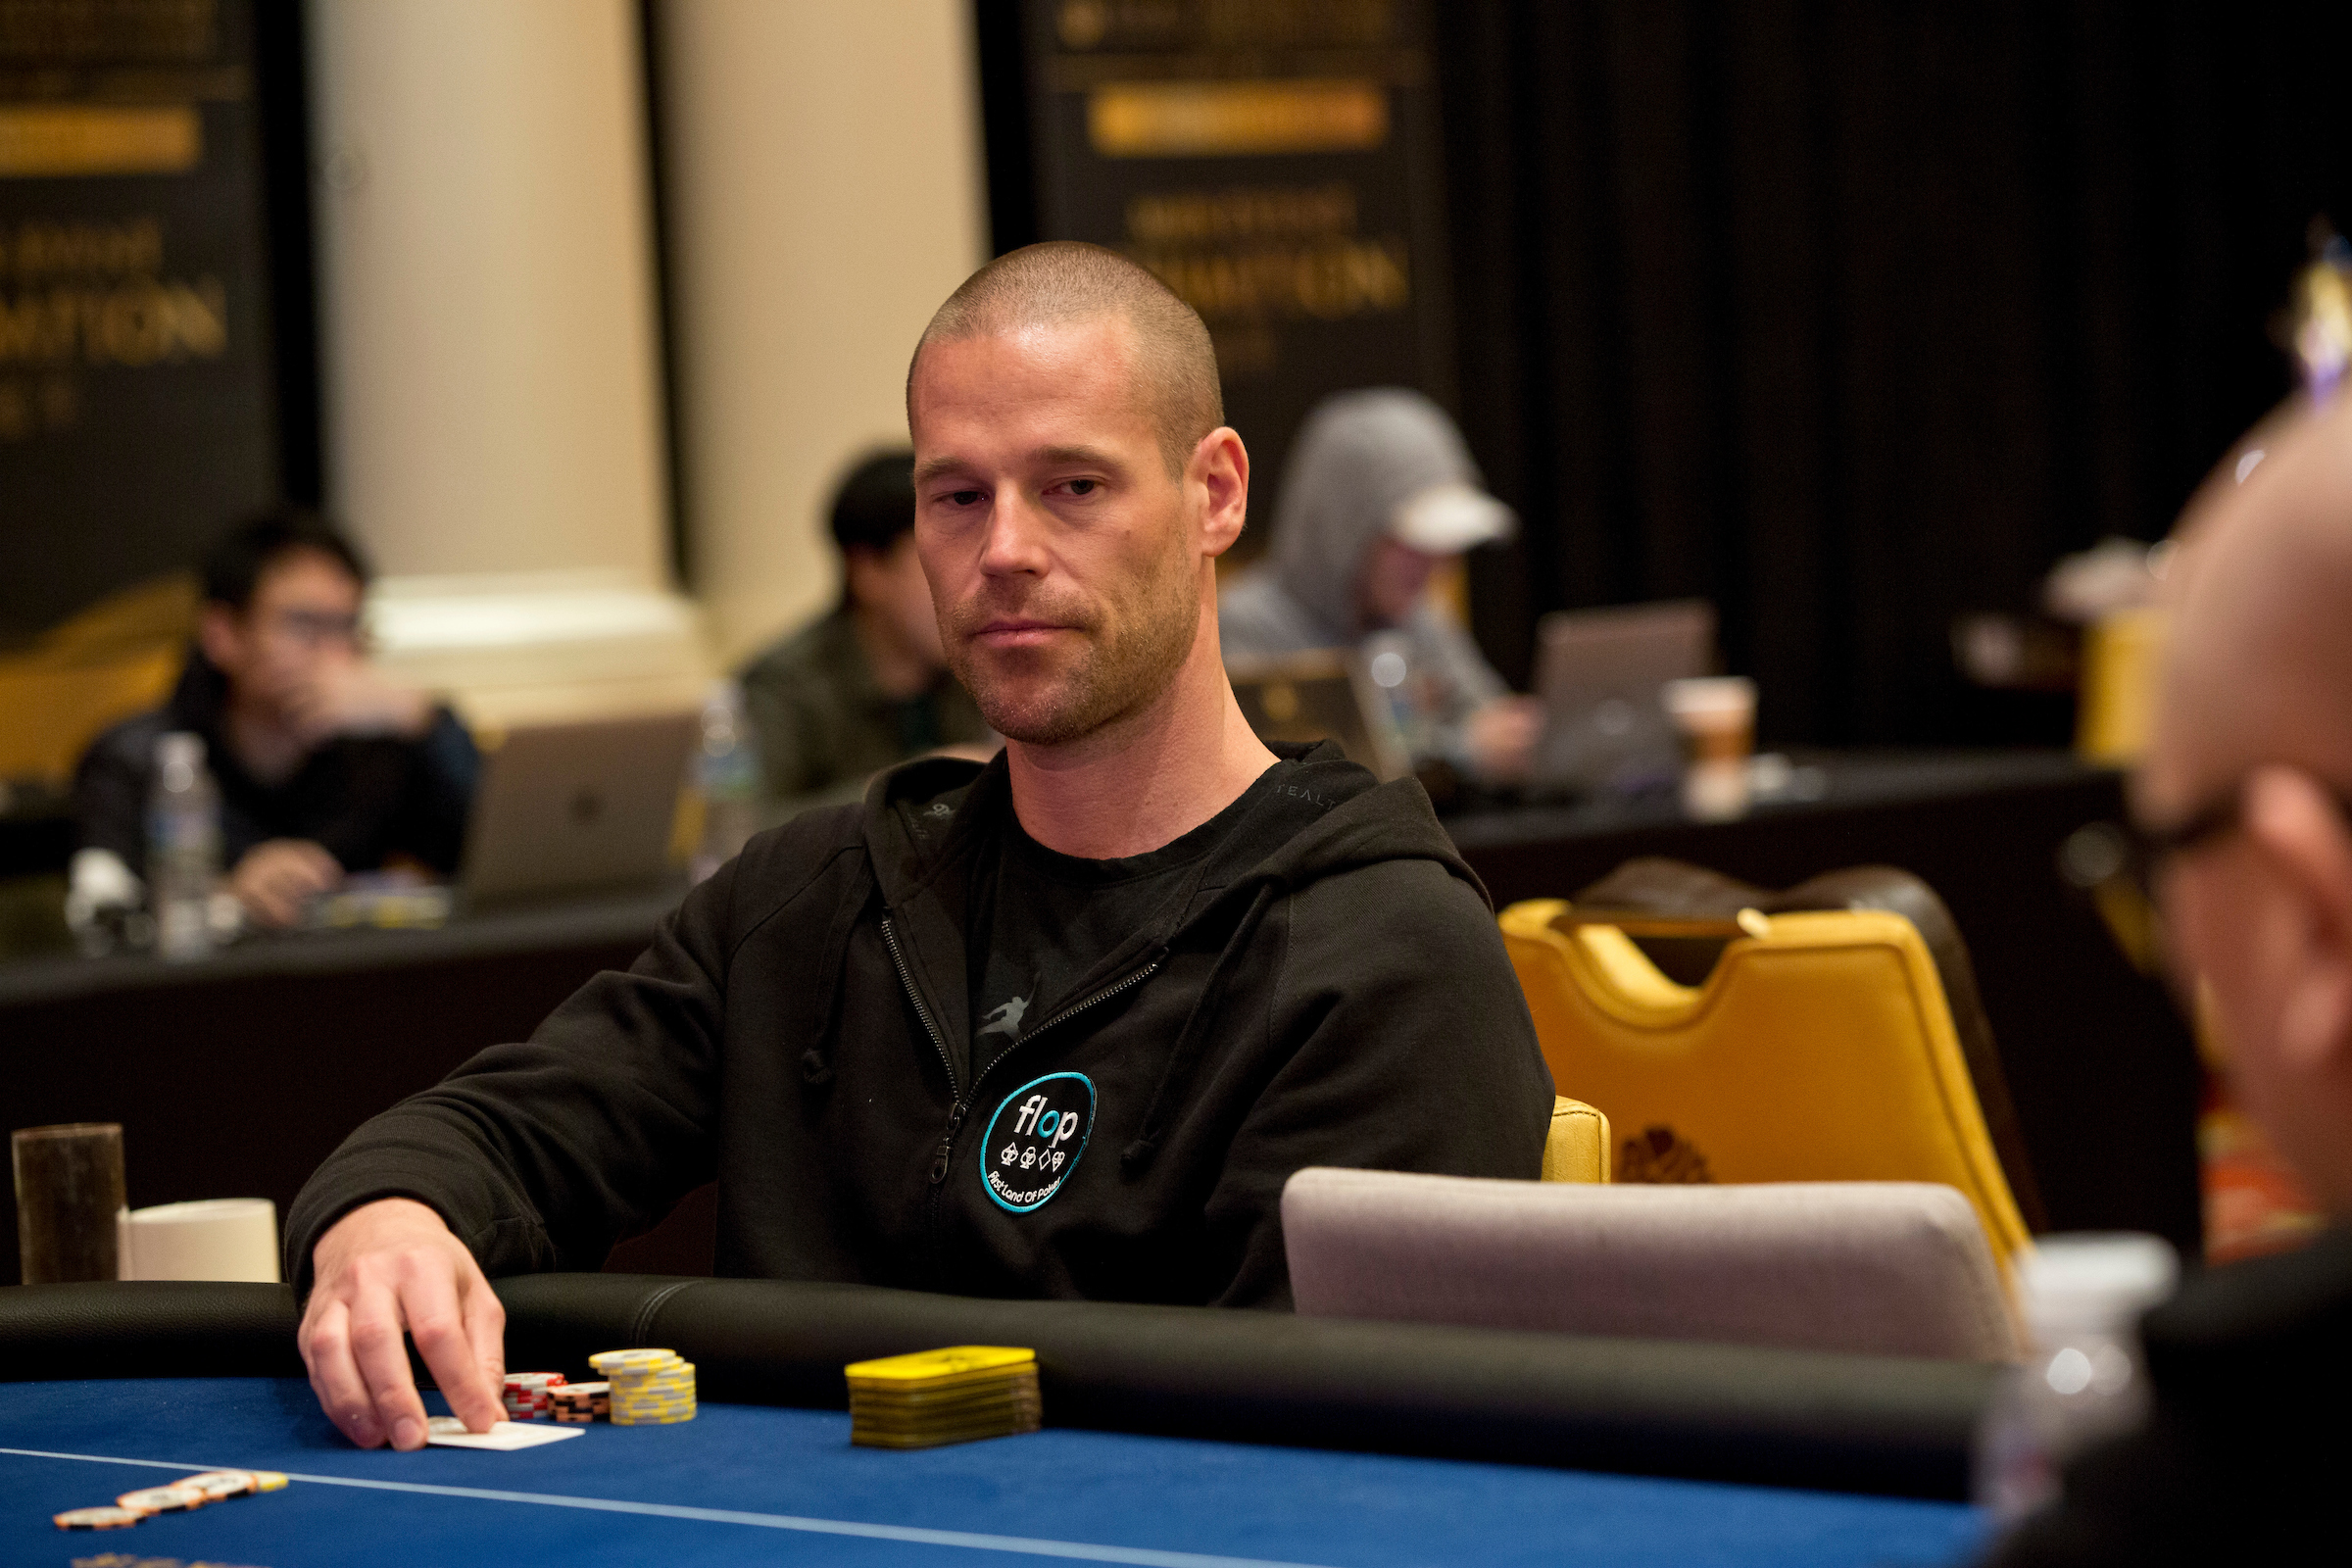 April High Roller Schedule: Patrik Antonius Poker Challenge; WPT Seminole Hard Rock Poker Showdown and ARIA High Rollers